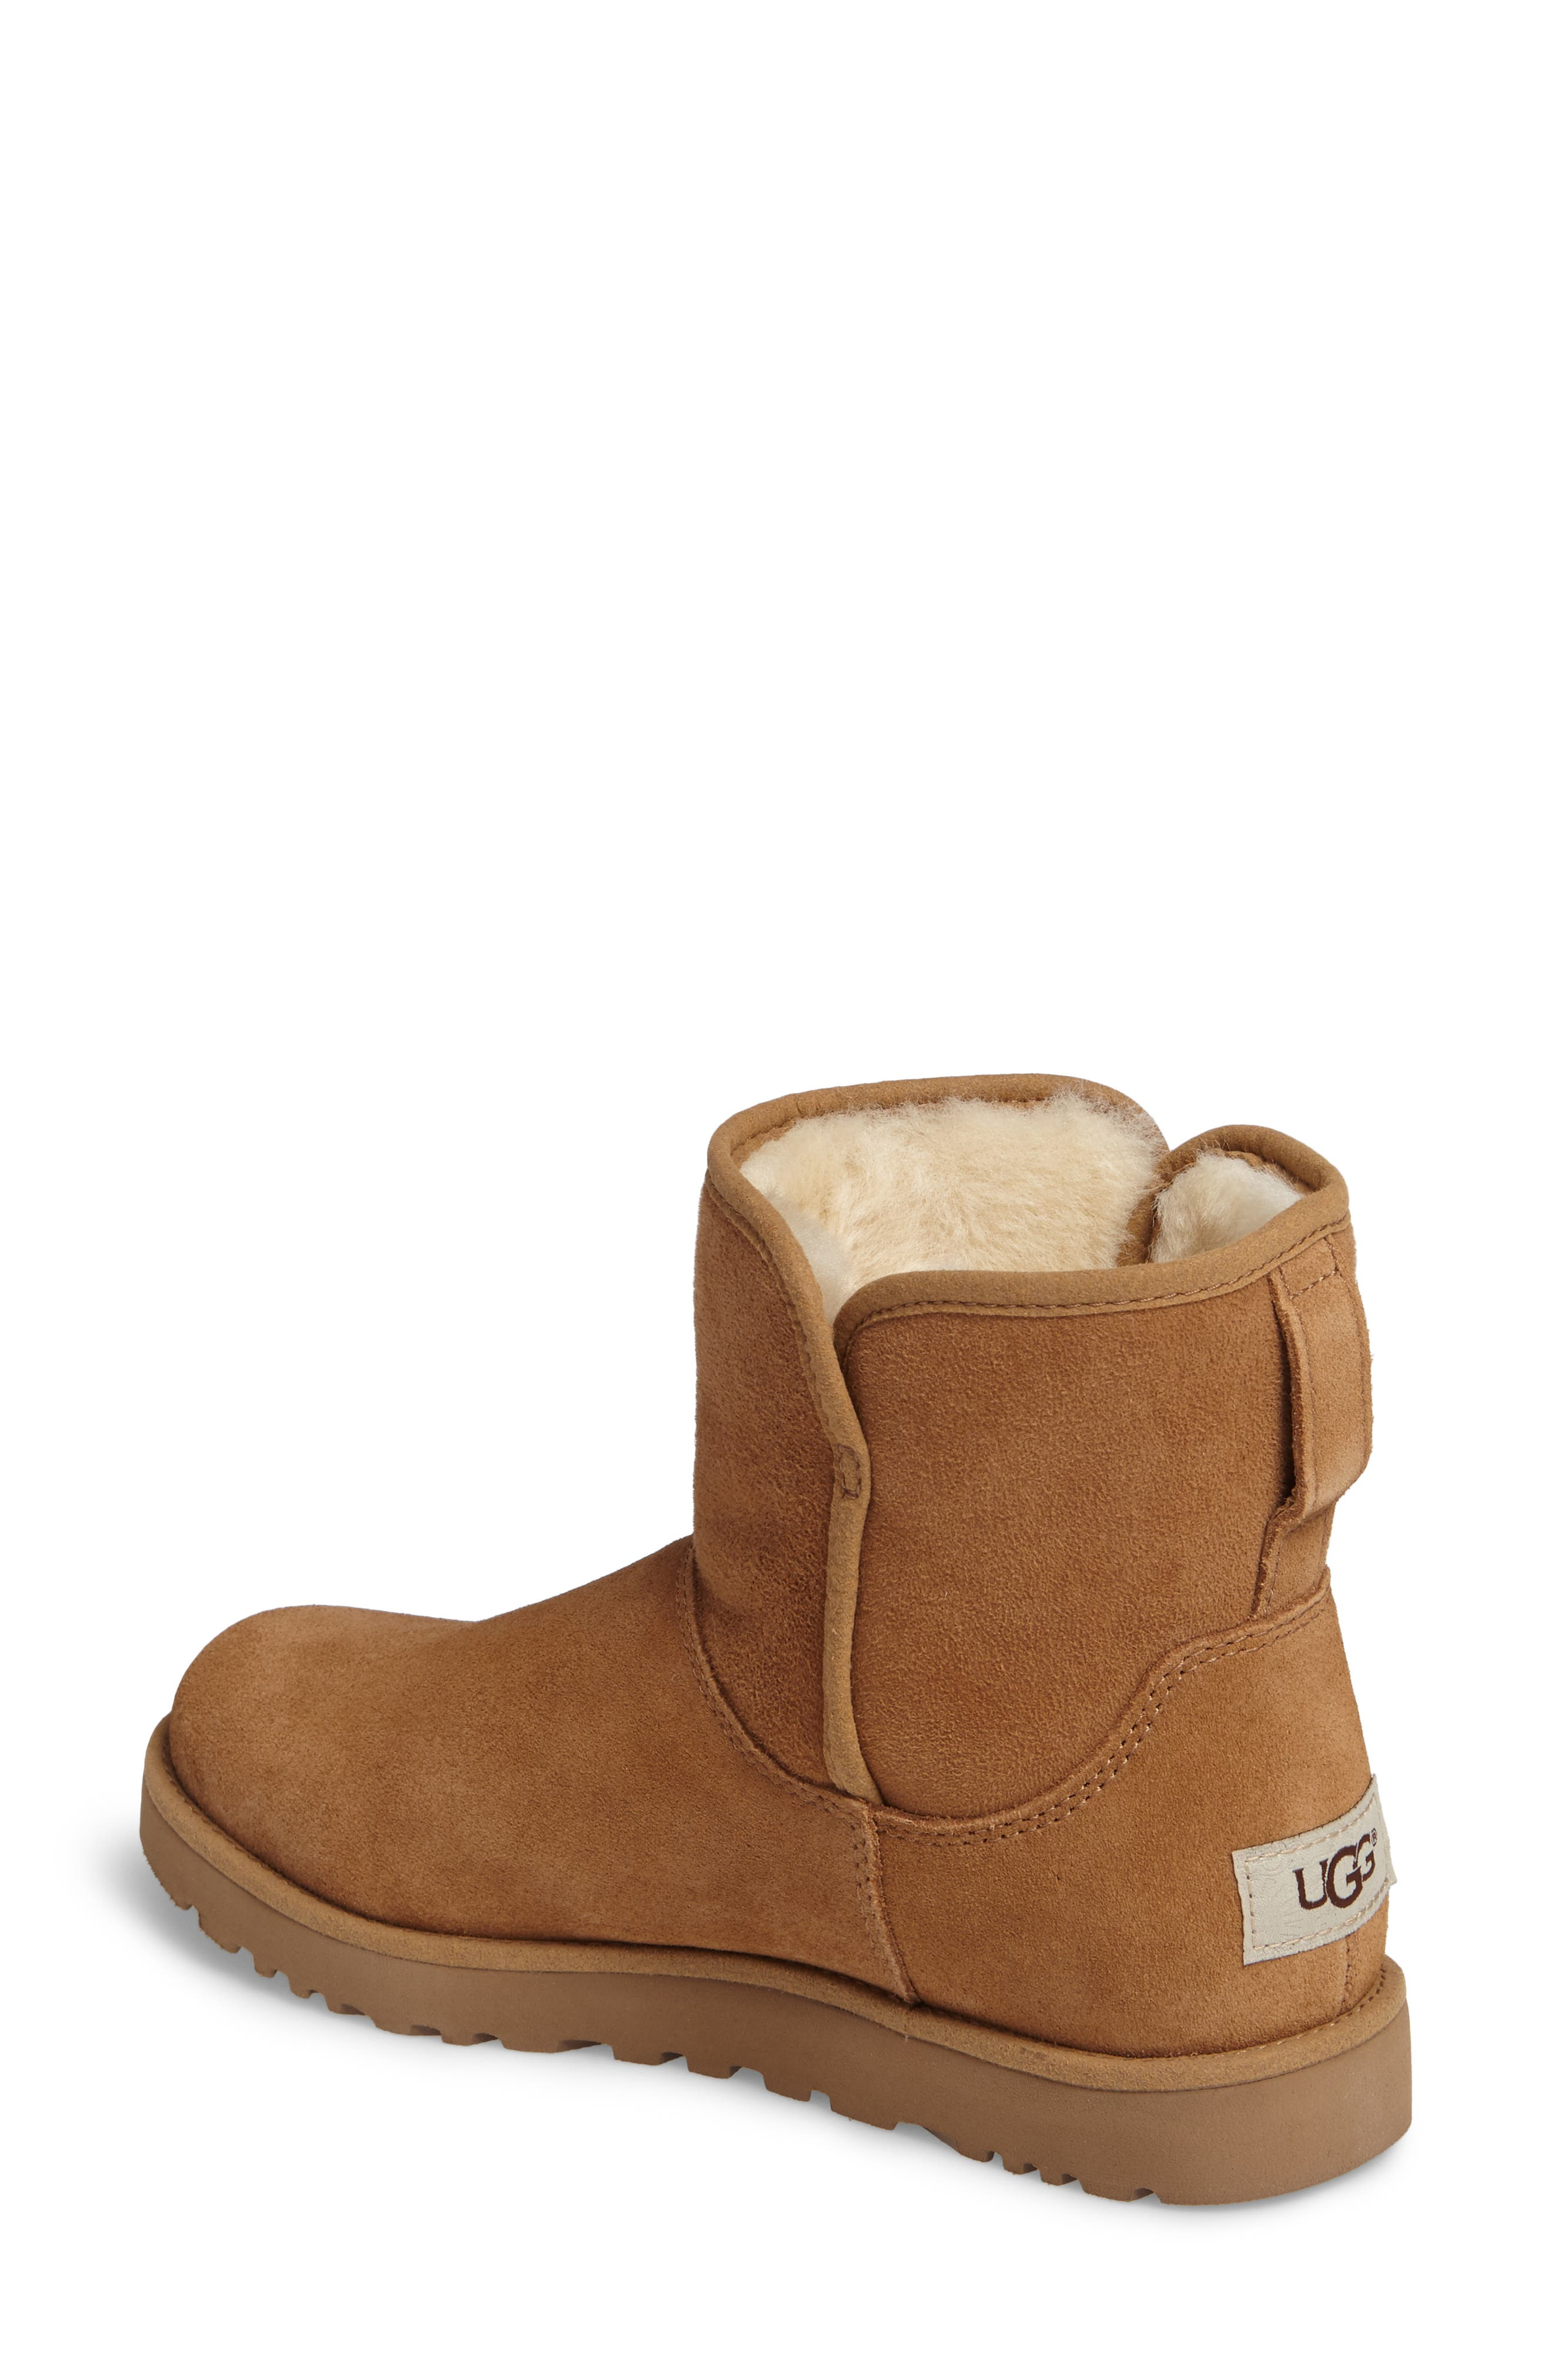 'Cory' Short Boot,                             Alternate thumbnail 2, color,                             Chestnut Suede